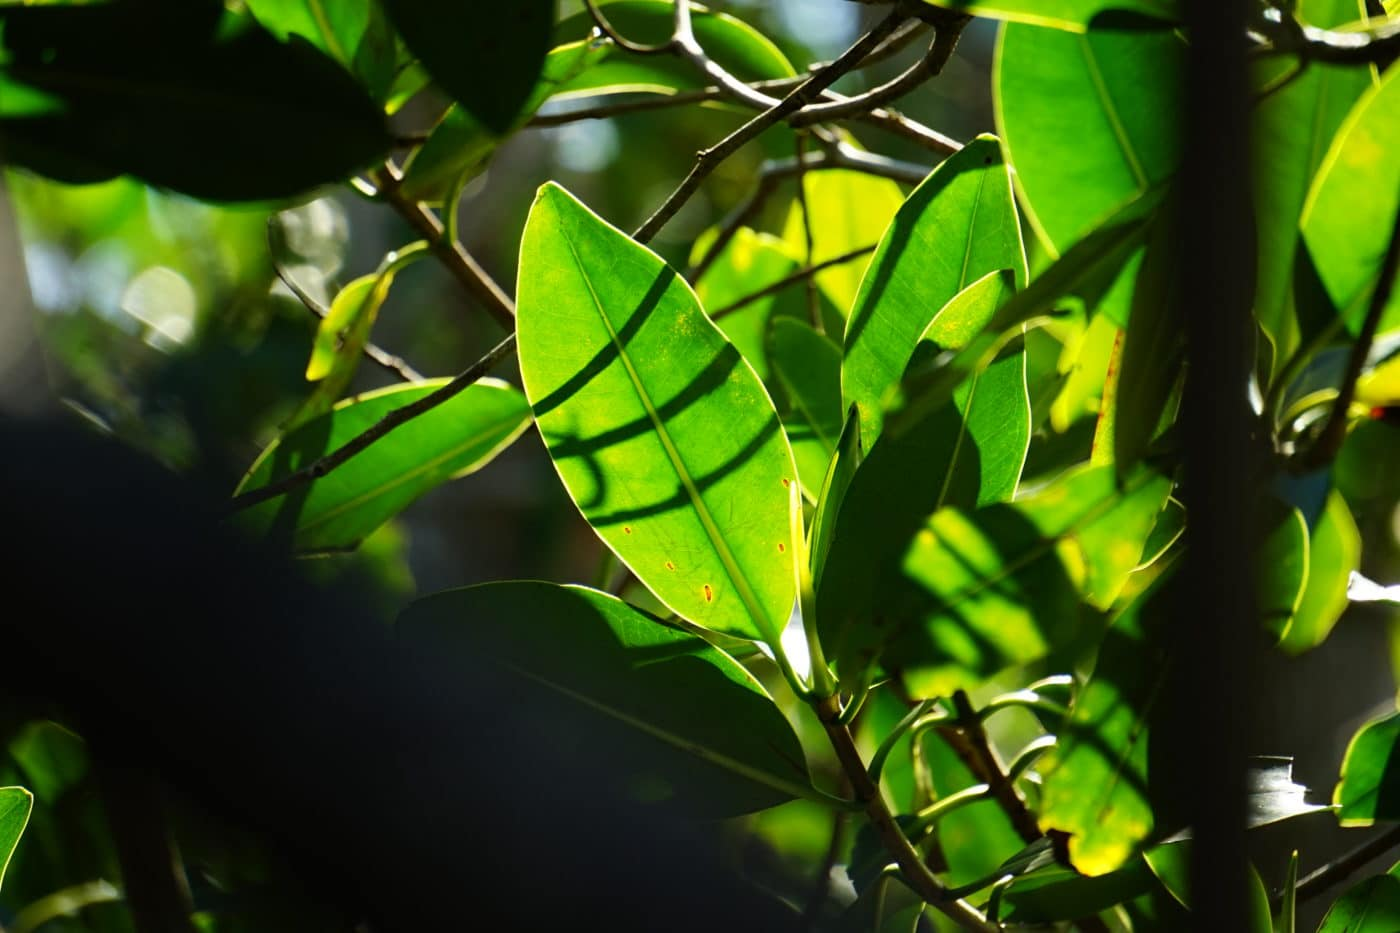 Close-up red mangrove leaves